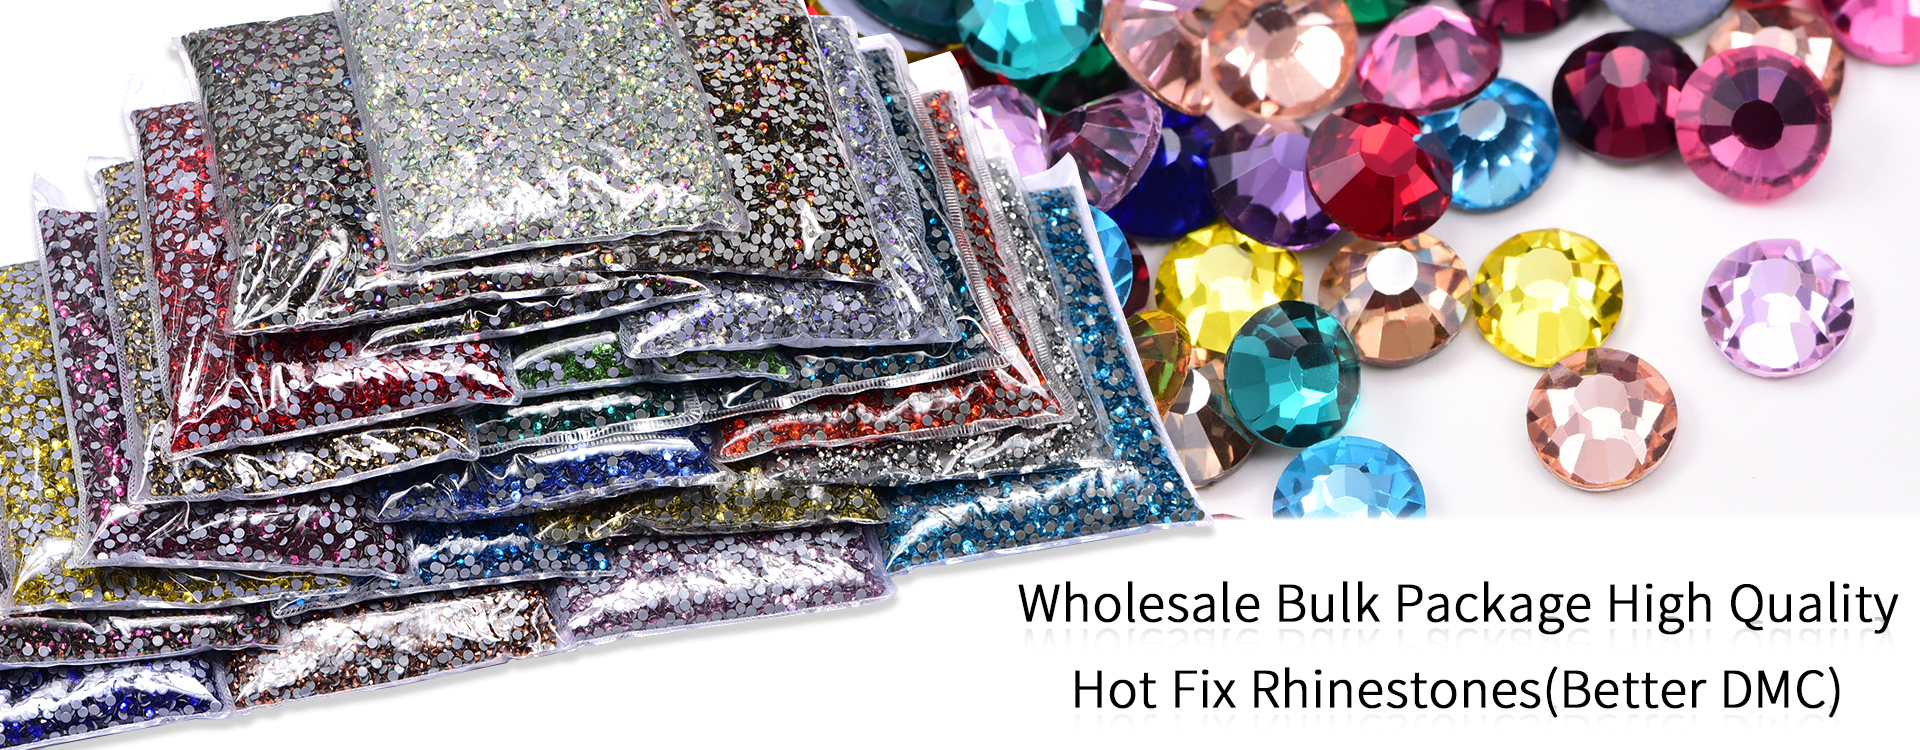 Blinginbox factory hot fix rhinestone